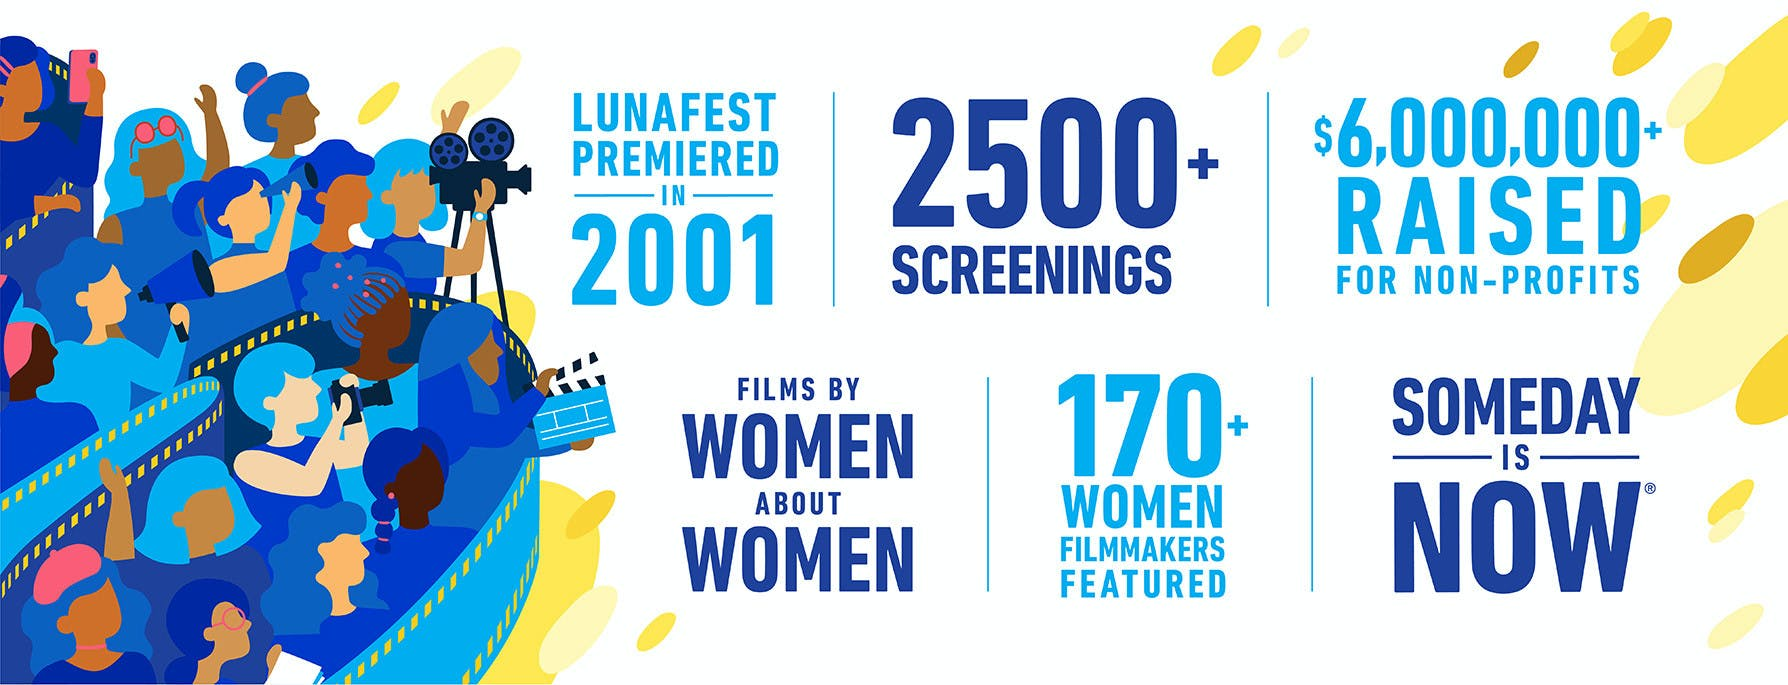 LUNAFEST infograph women in film over 20 years